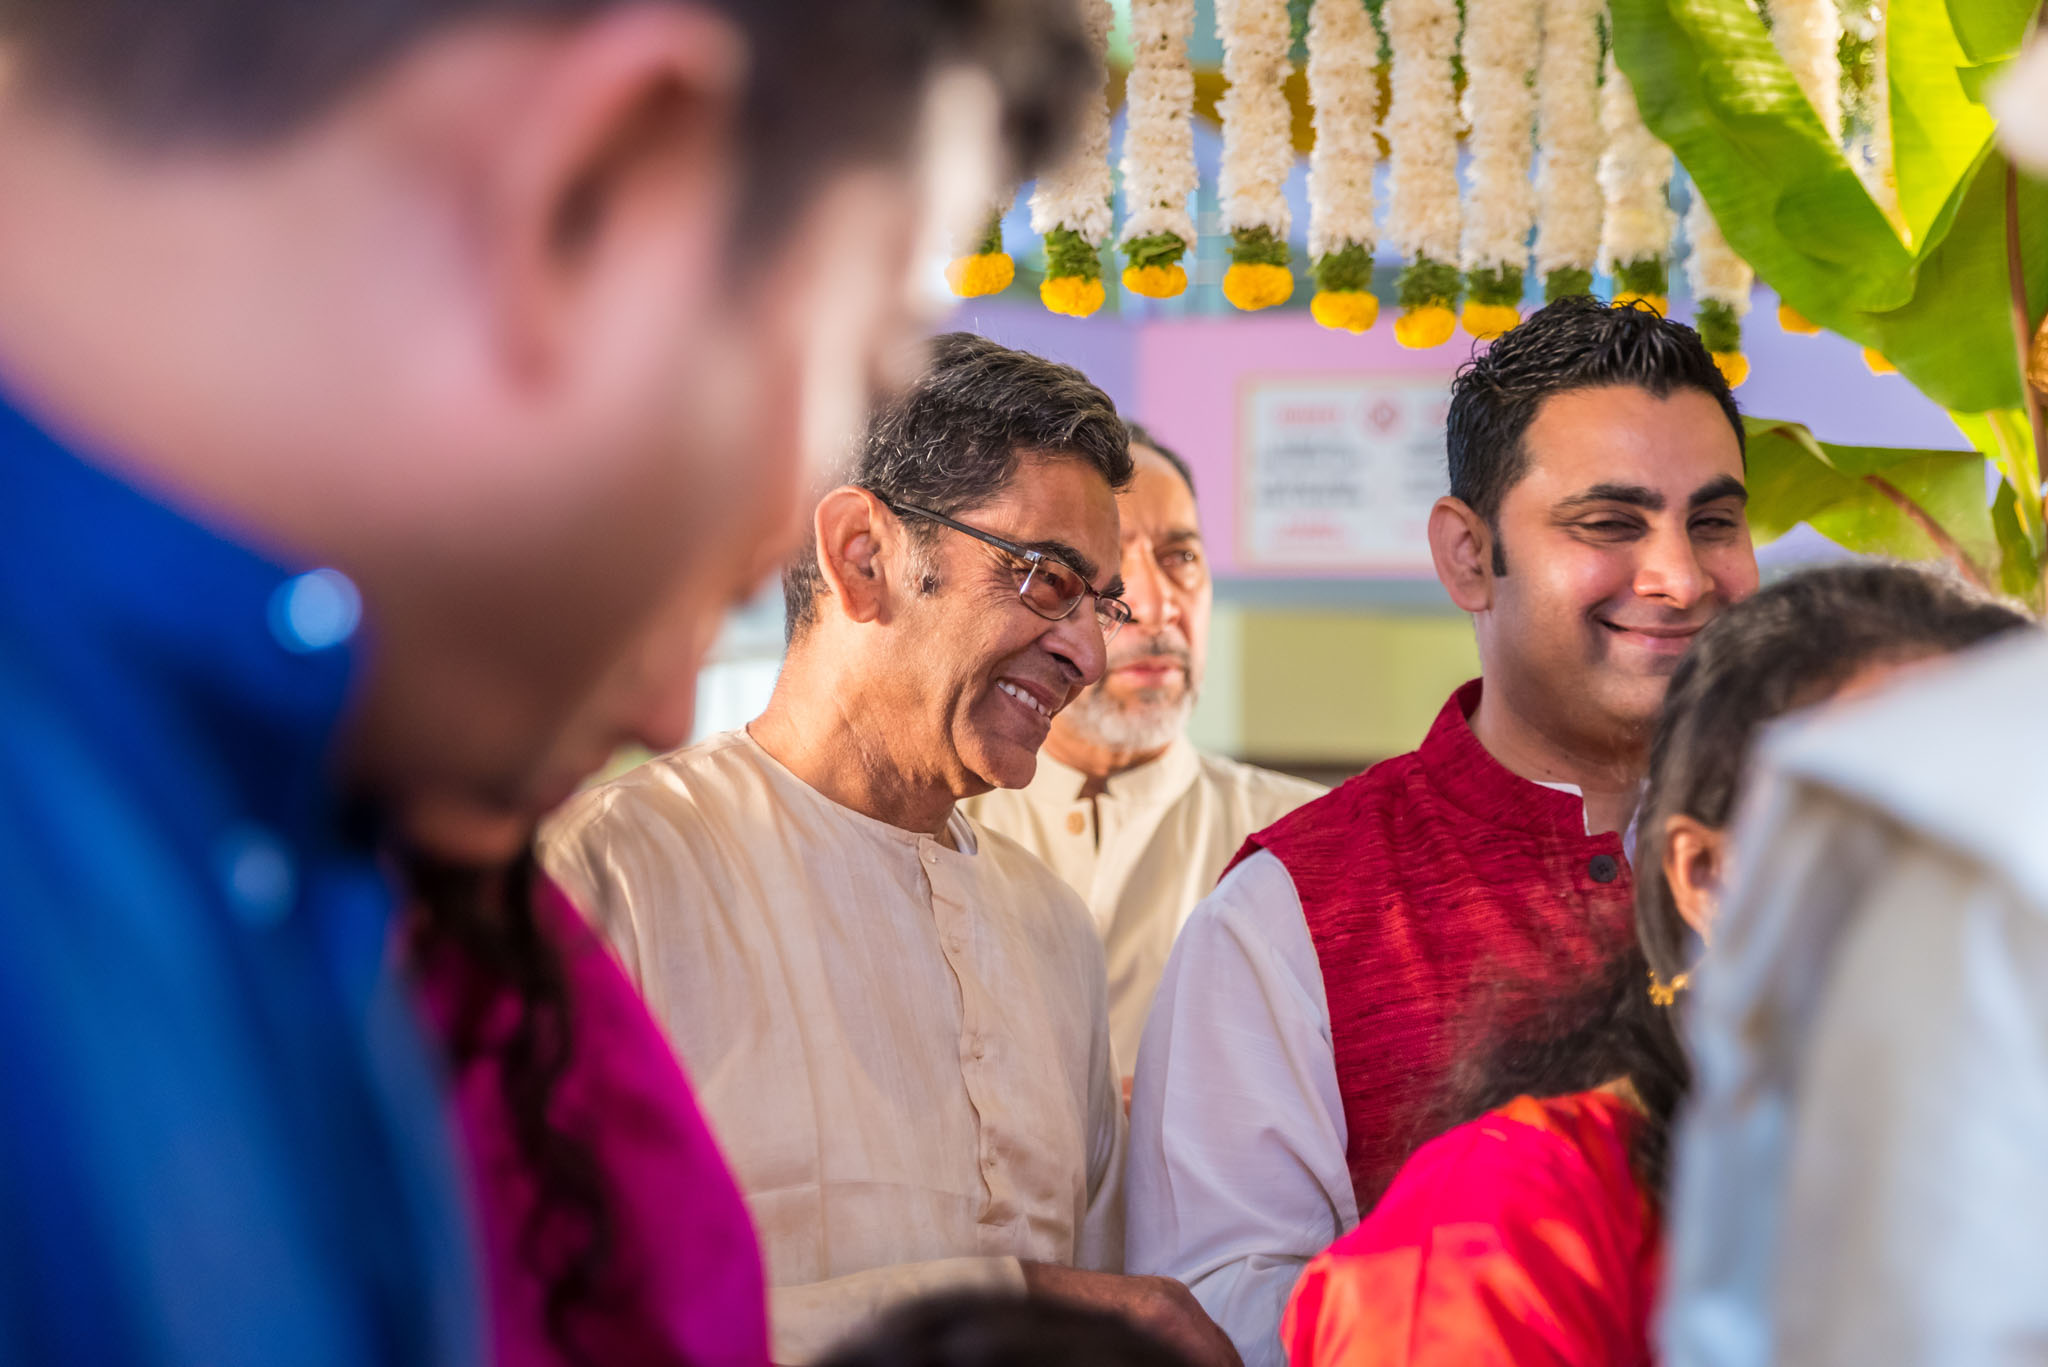 WhatKnot-Candid-Wedding-Photography-Mumbai-Bangalore-163